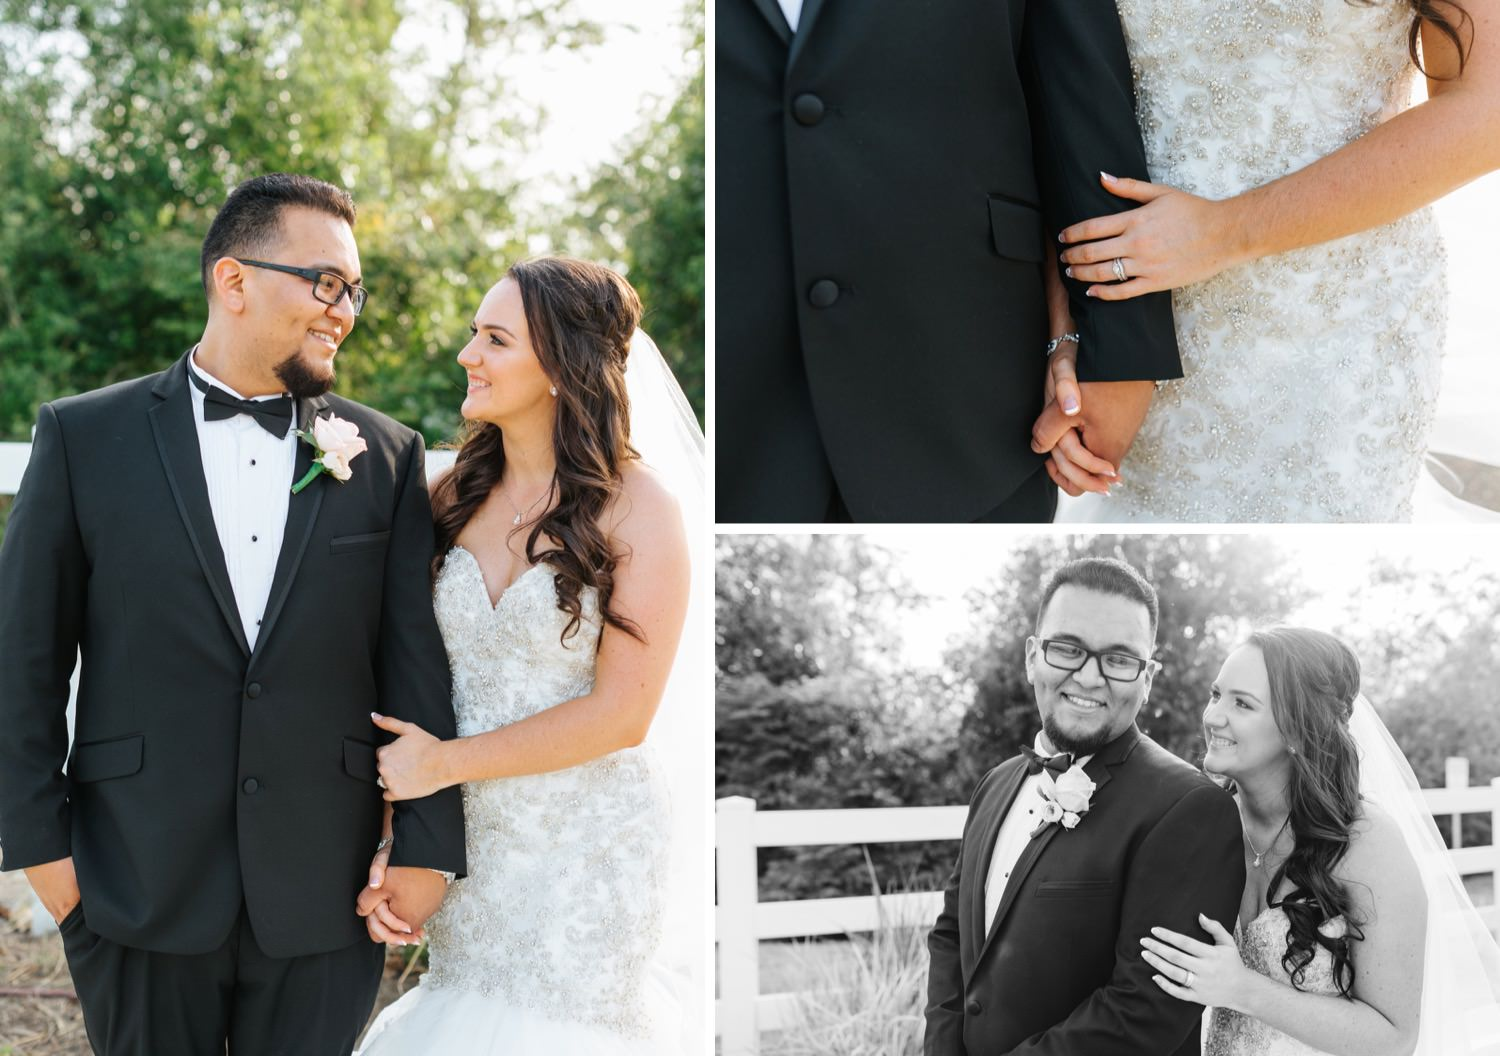 Classic and Romantic Bride and Groom Portraits - https://brittneyhannonphotography.com